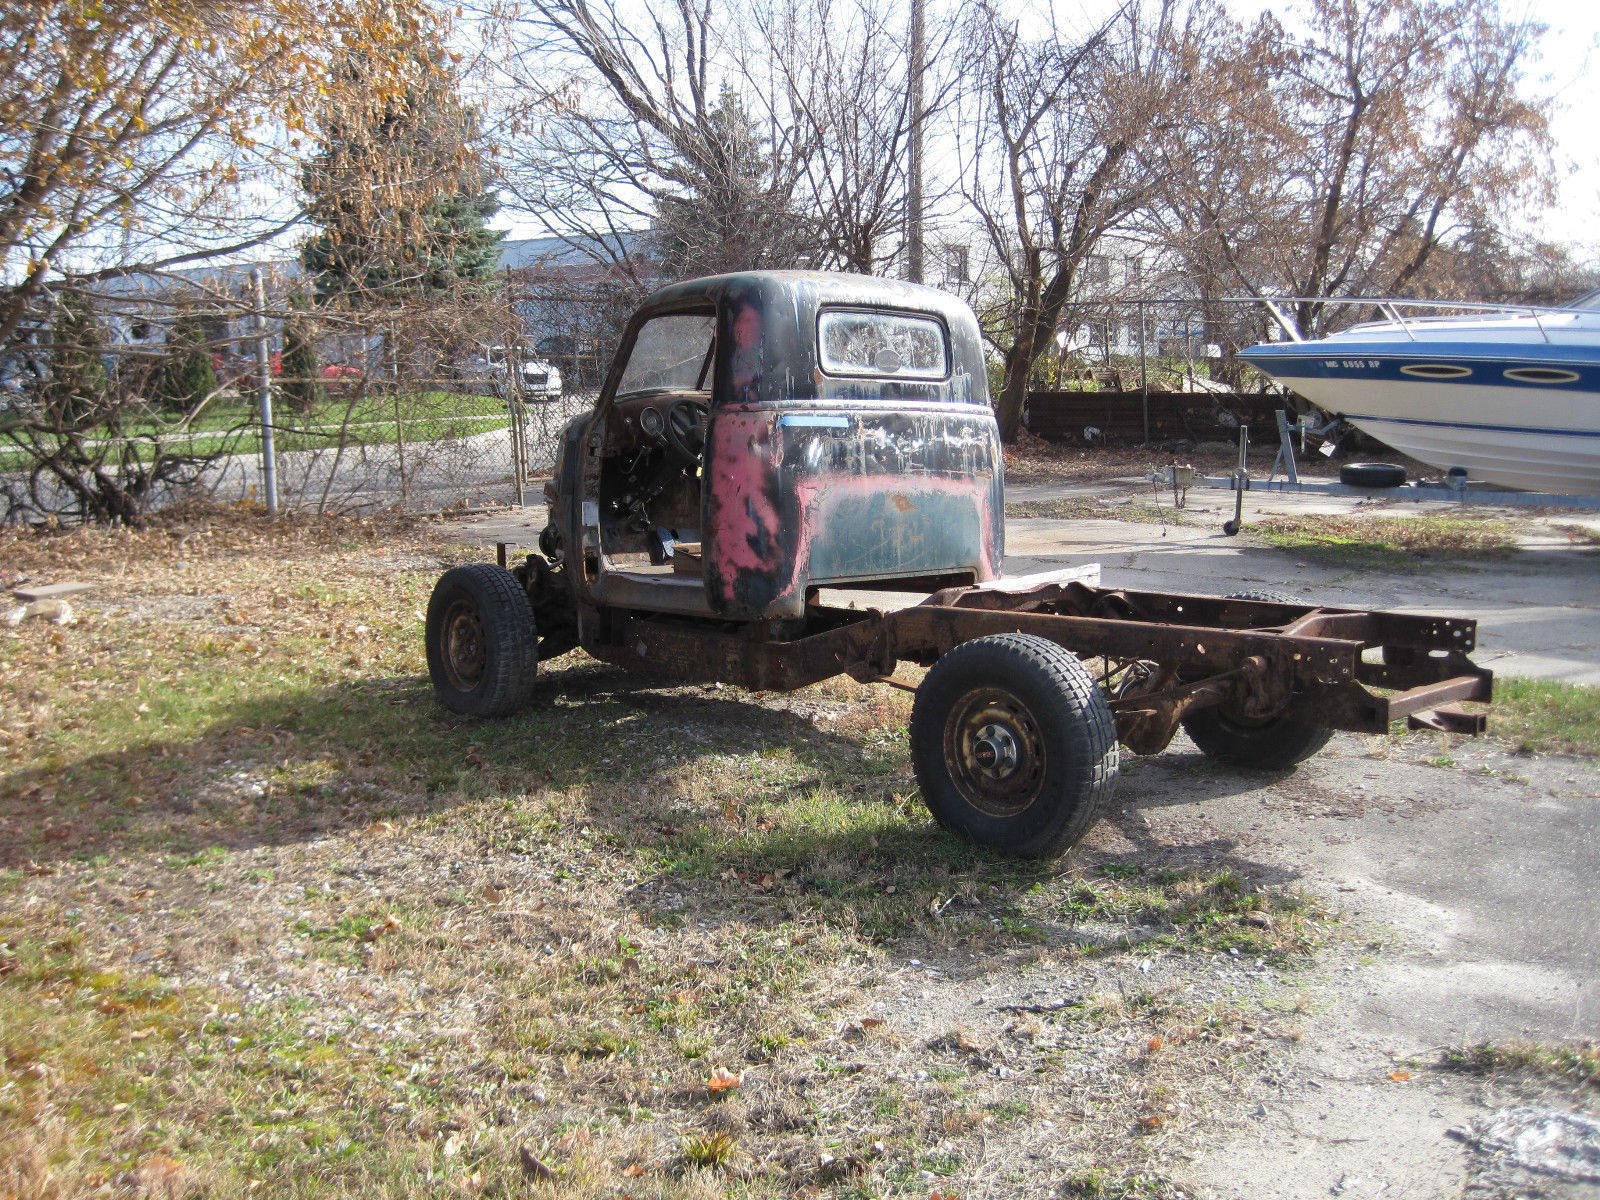 1949 Chevy Pickup 4x4 Texas Truck For Sale In Livonia Michigan Chevrolet Other Pickups